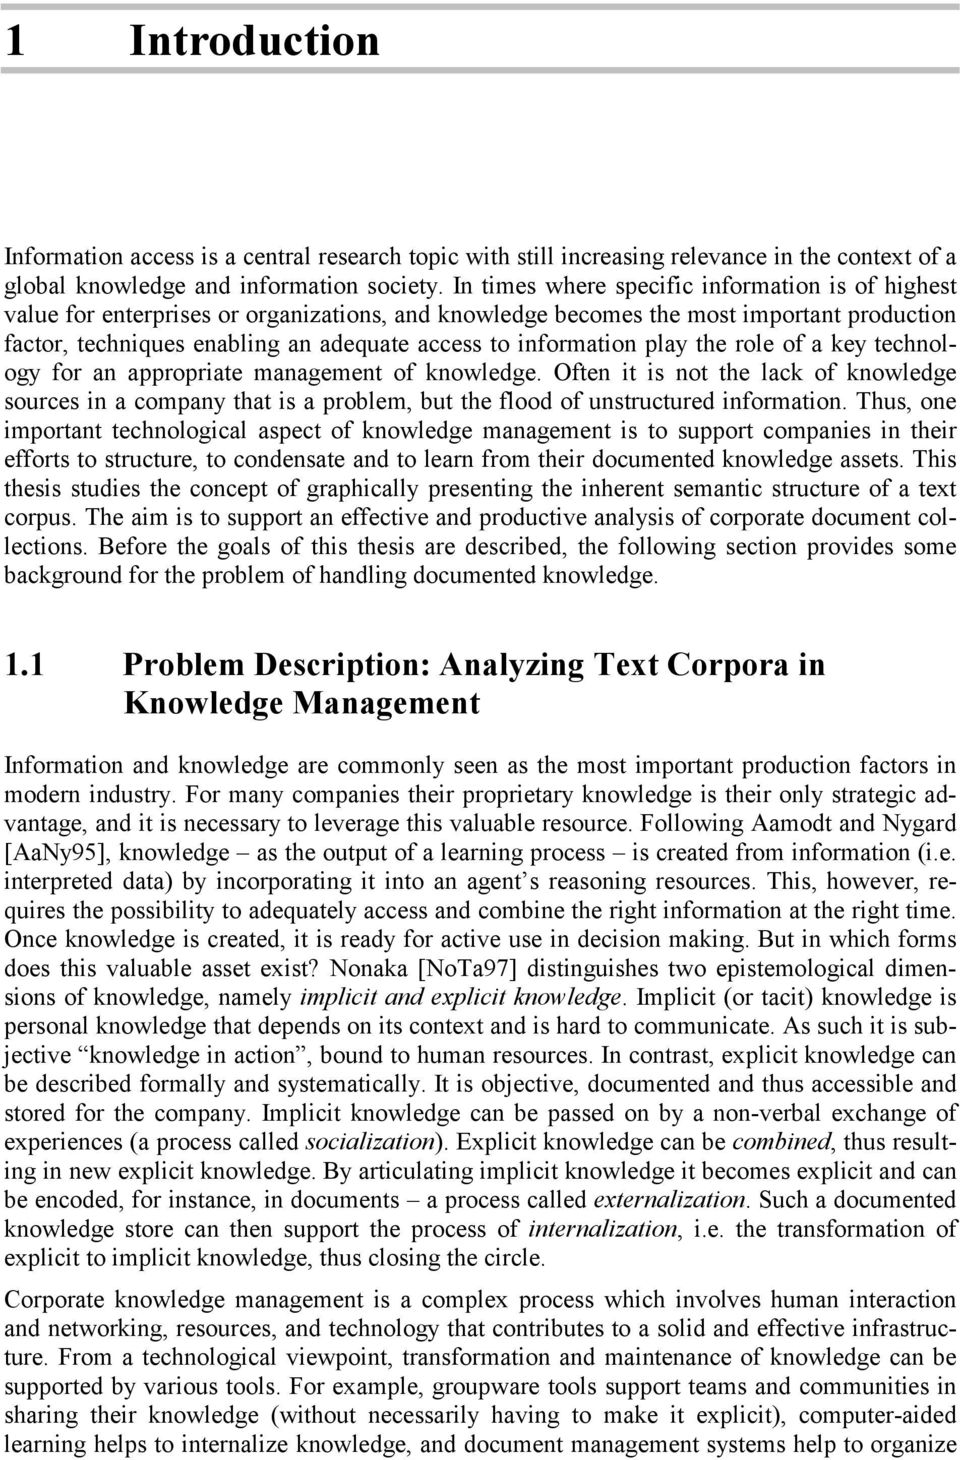 information play the role of a key technology for an appropriate management of knowledge.